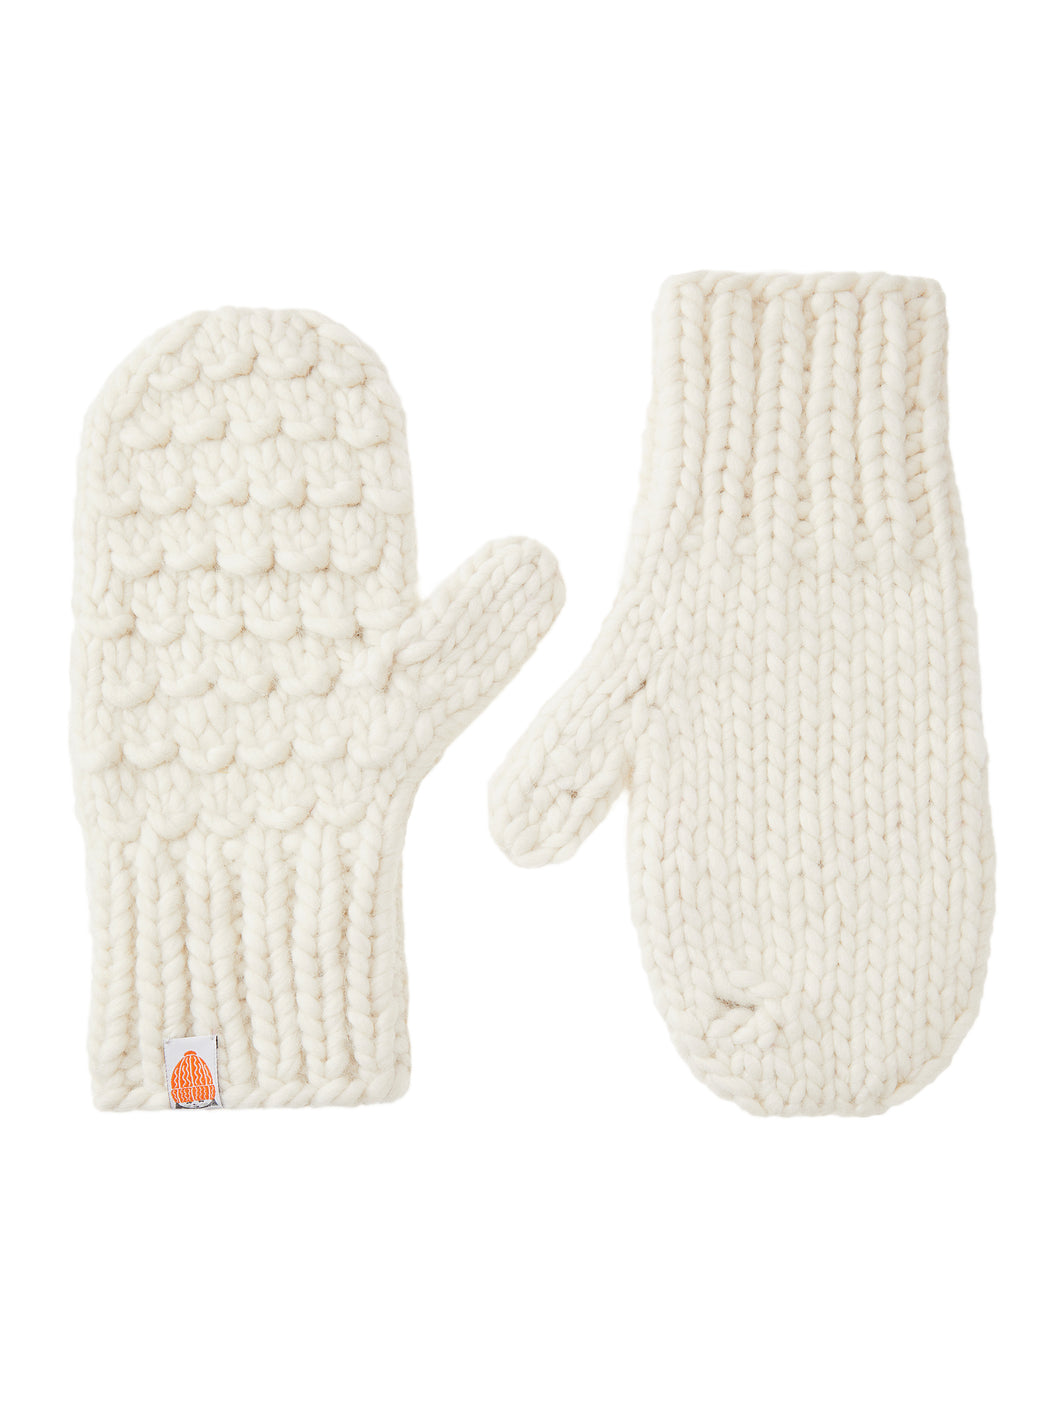 The Gunn Mittens